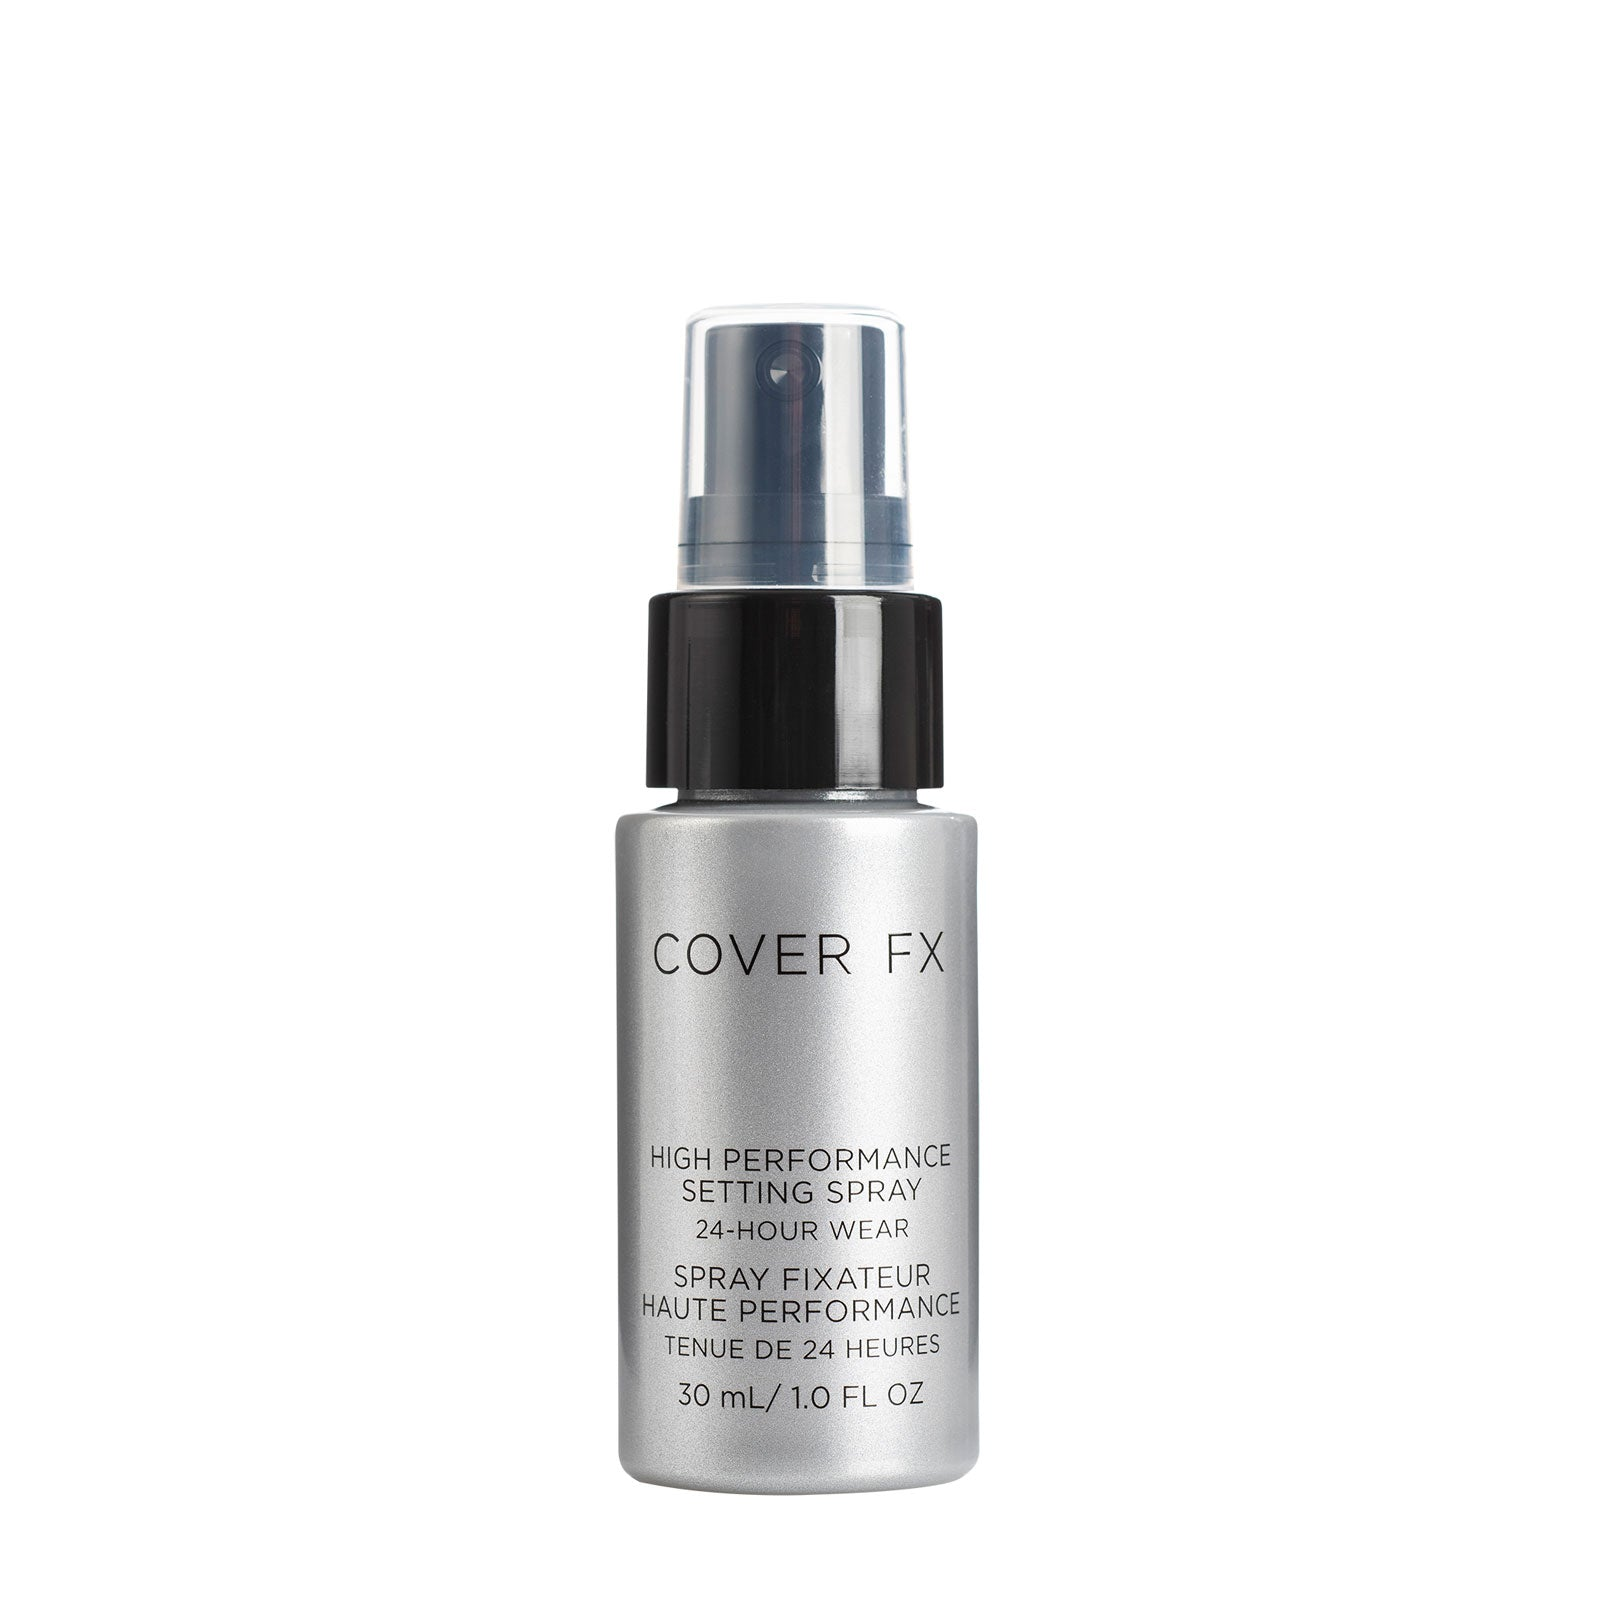 Cover FX High Performance Setting Spray Travel Size 30ml